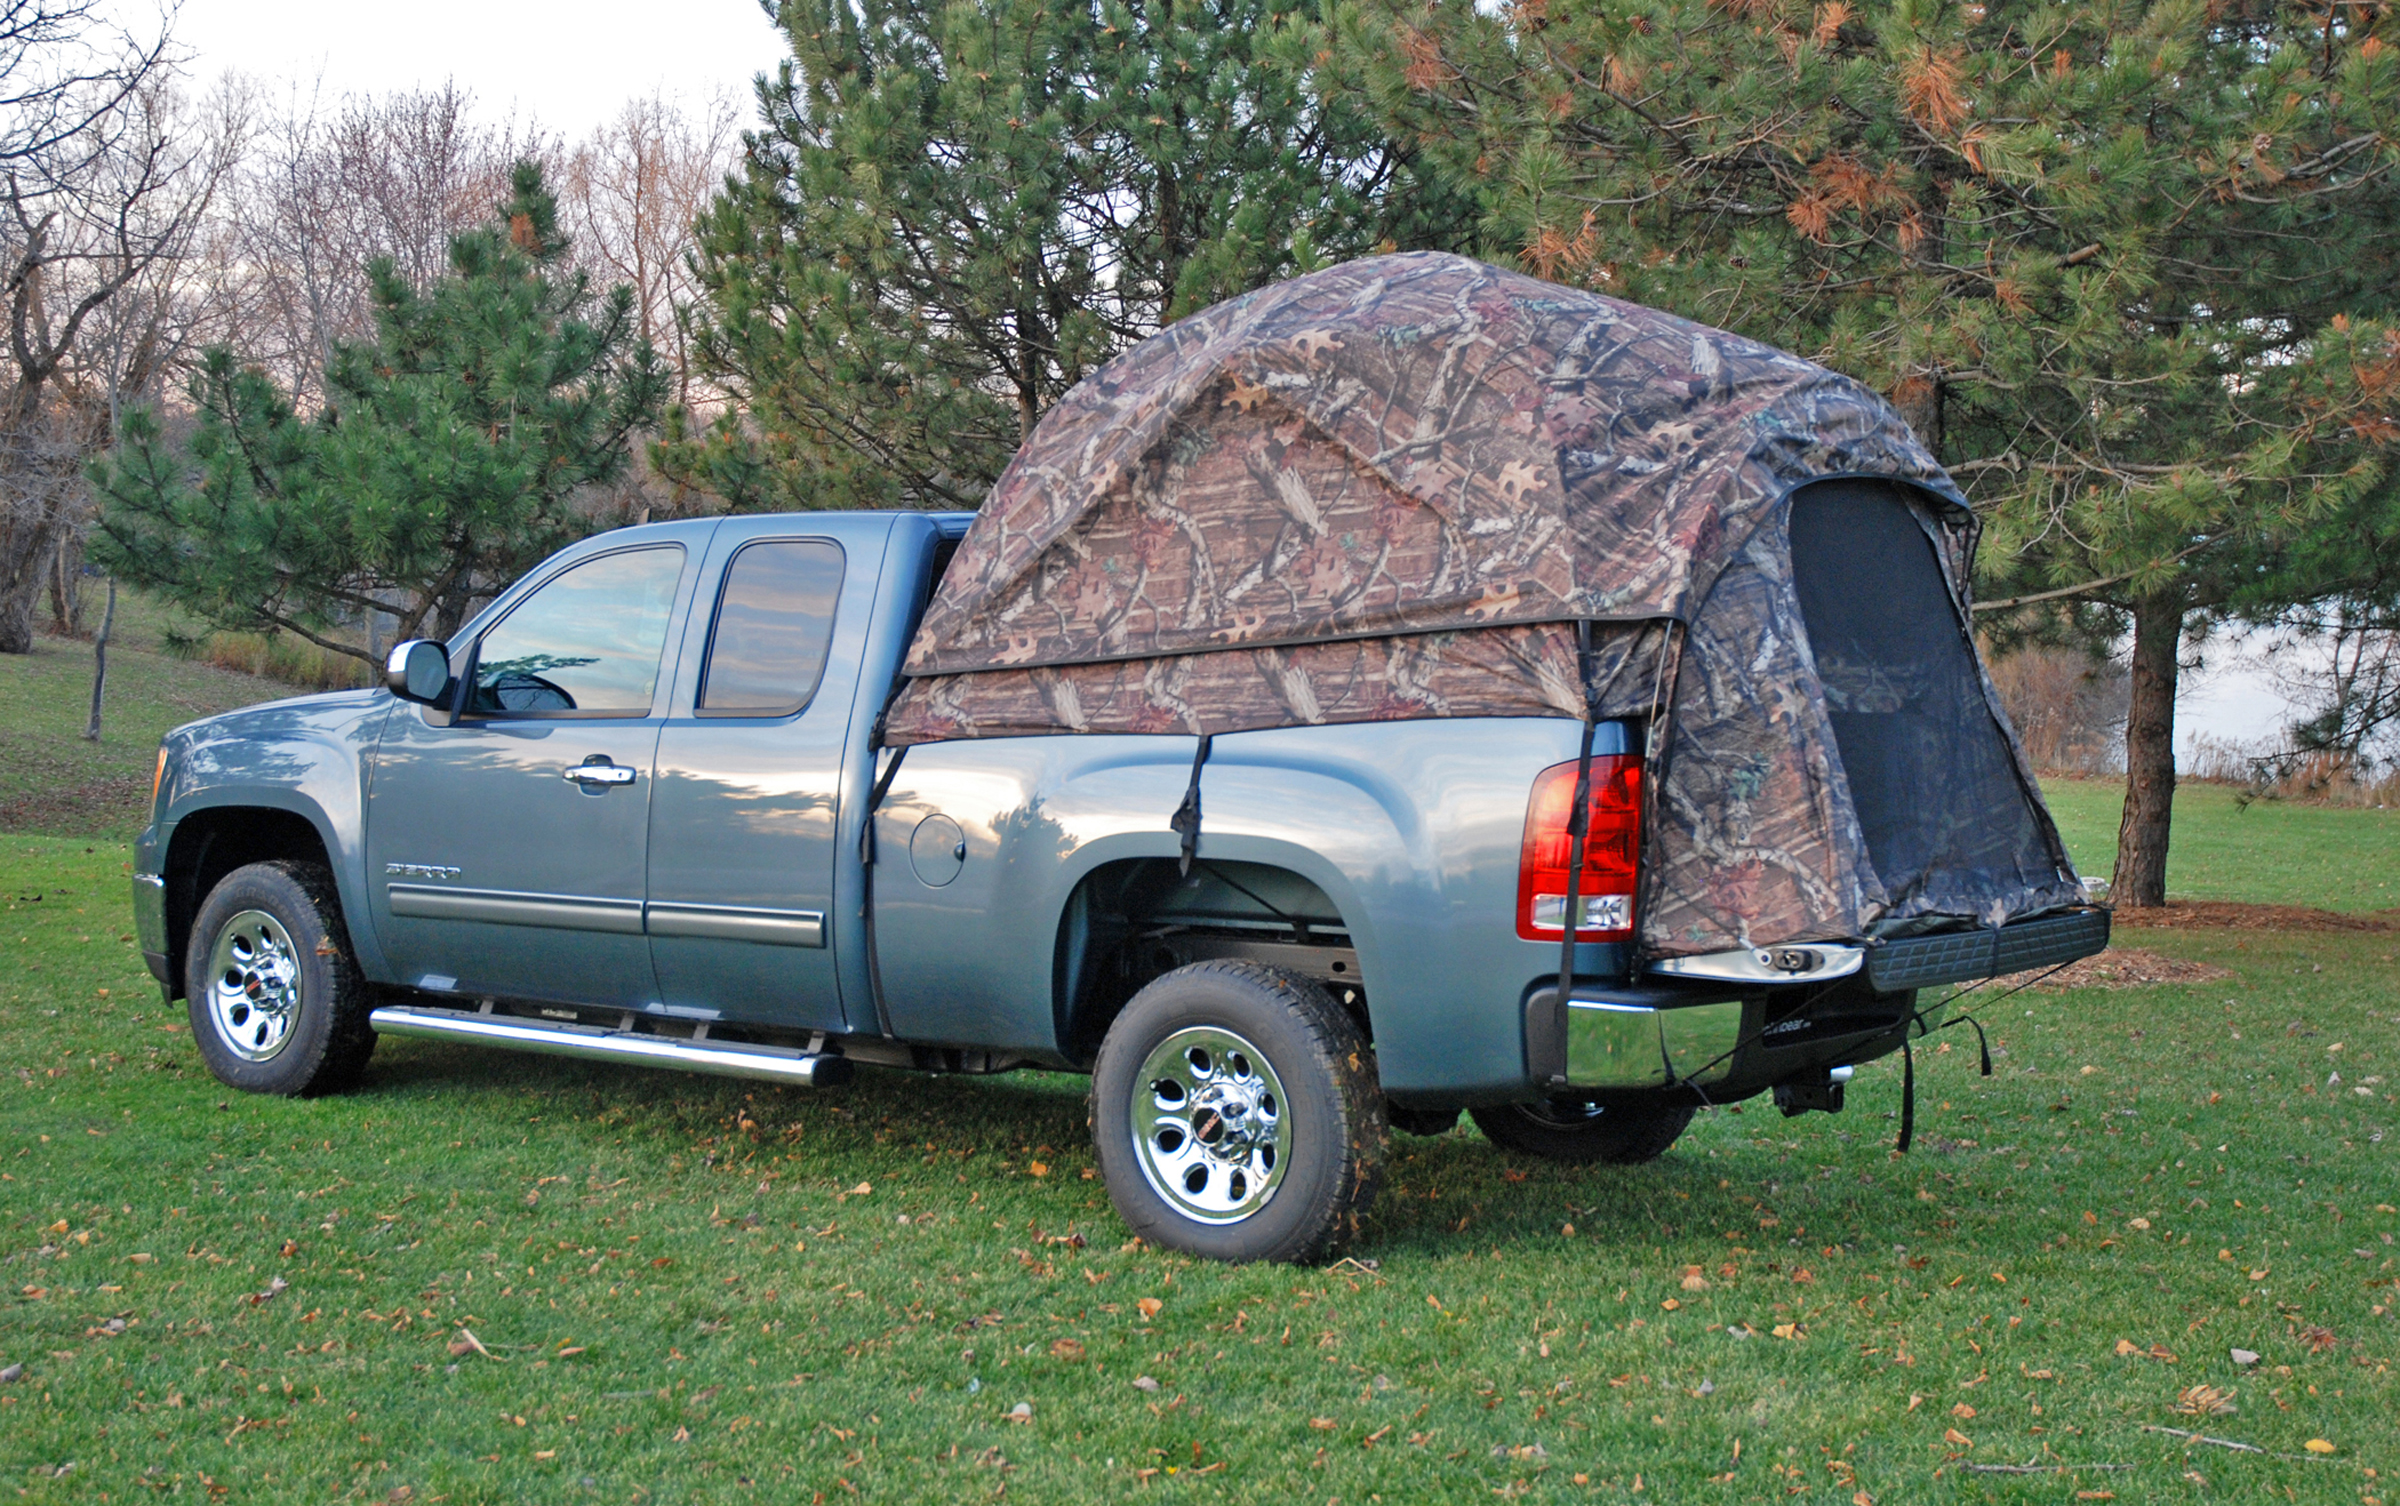 Napier Outdoors C& Truck Tent- Full Size Crew Cab - 5.5 Ft. & Outdoors Camp Truck Tent- Full Size Crew Cab - 5.5 Ft.